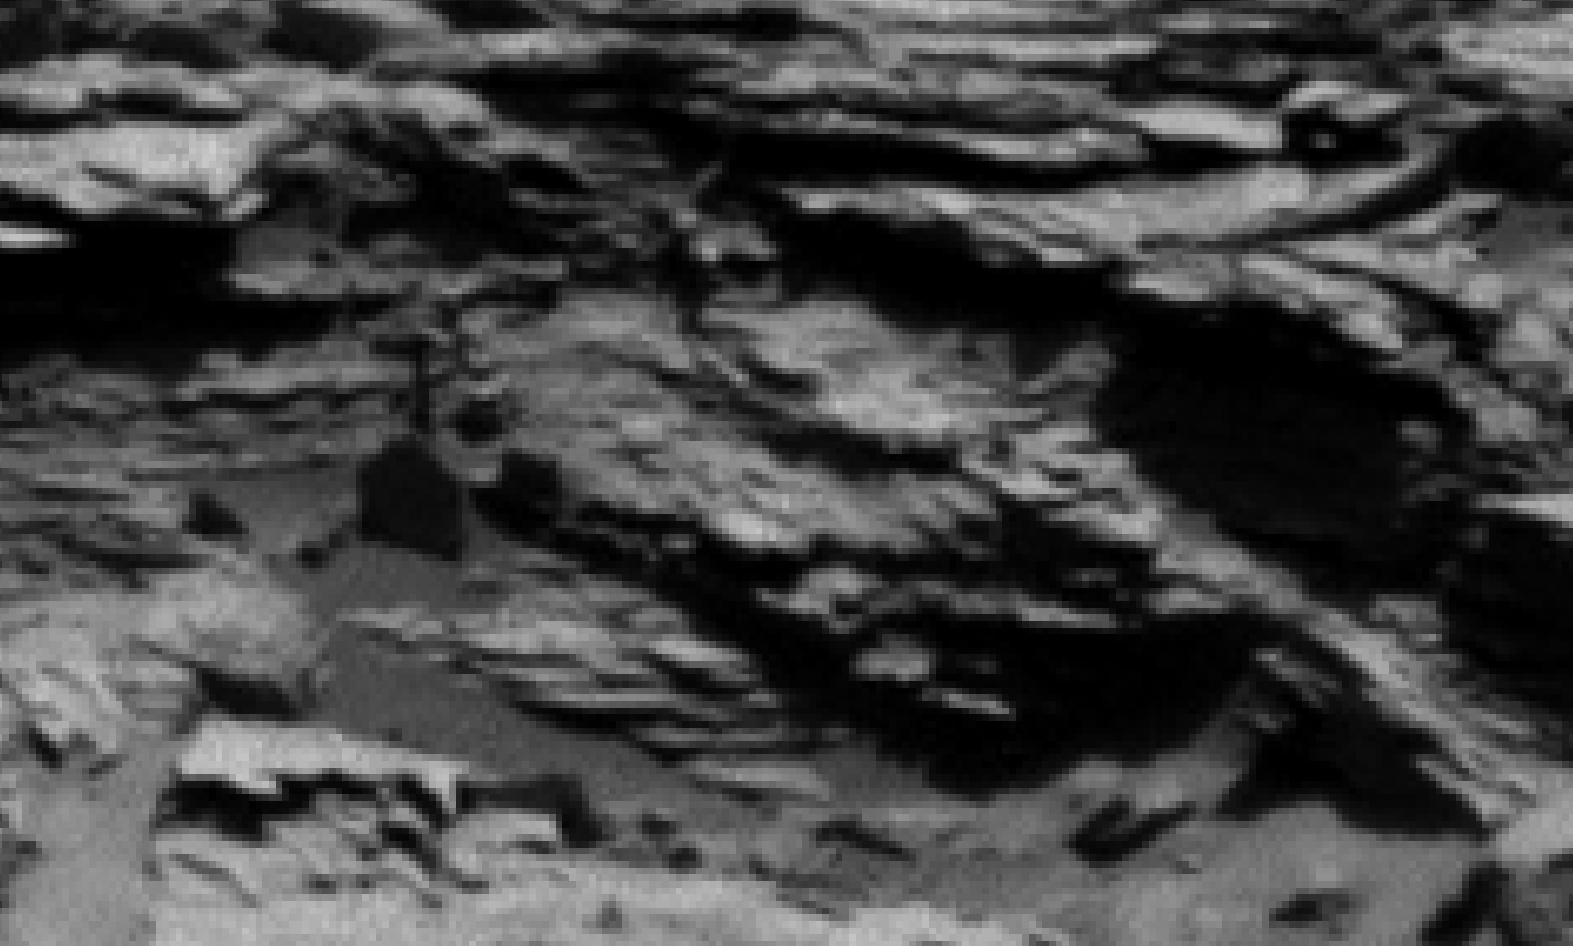 mars sol 1301 anomaly-artifacts 1 was life on mars